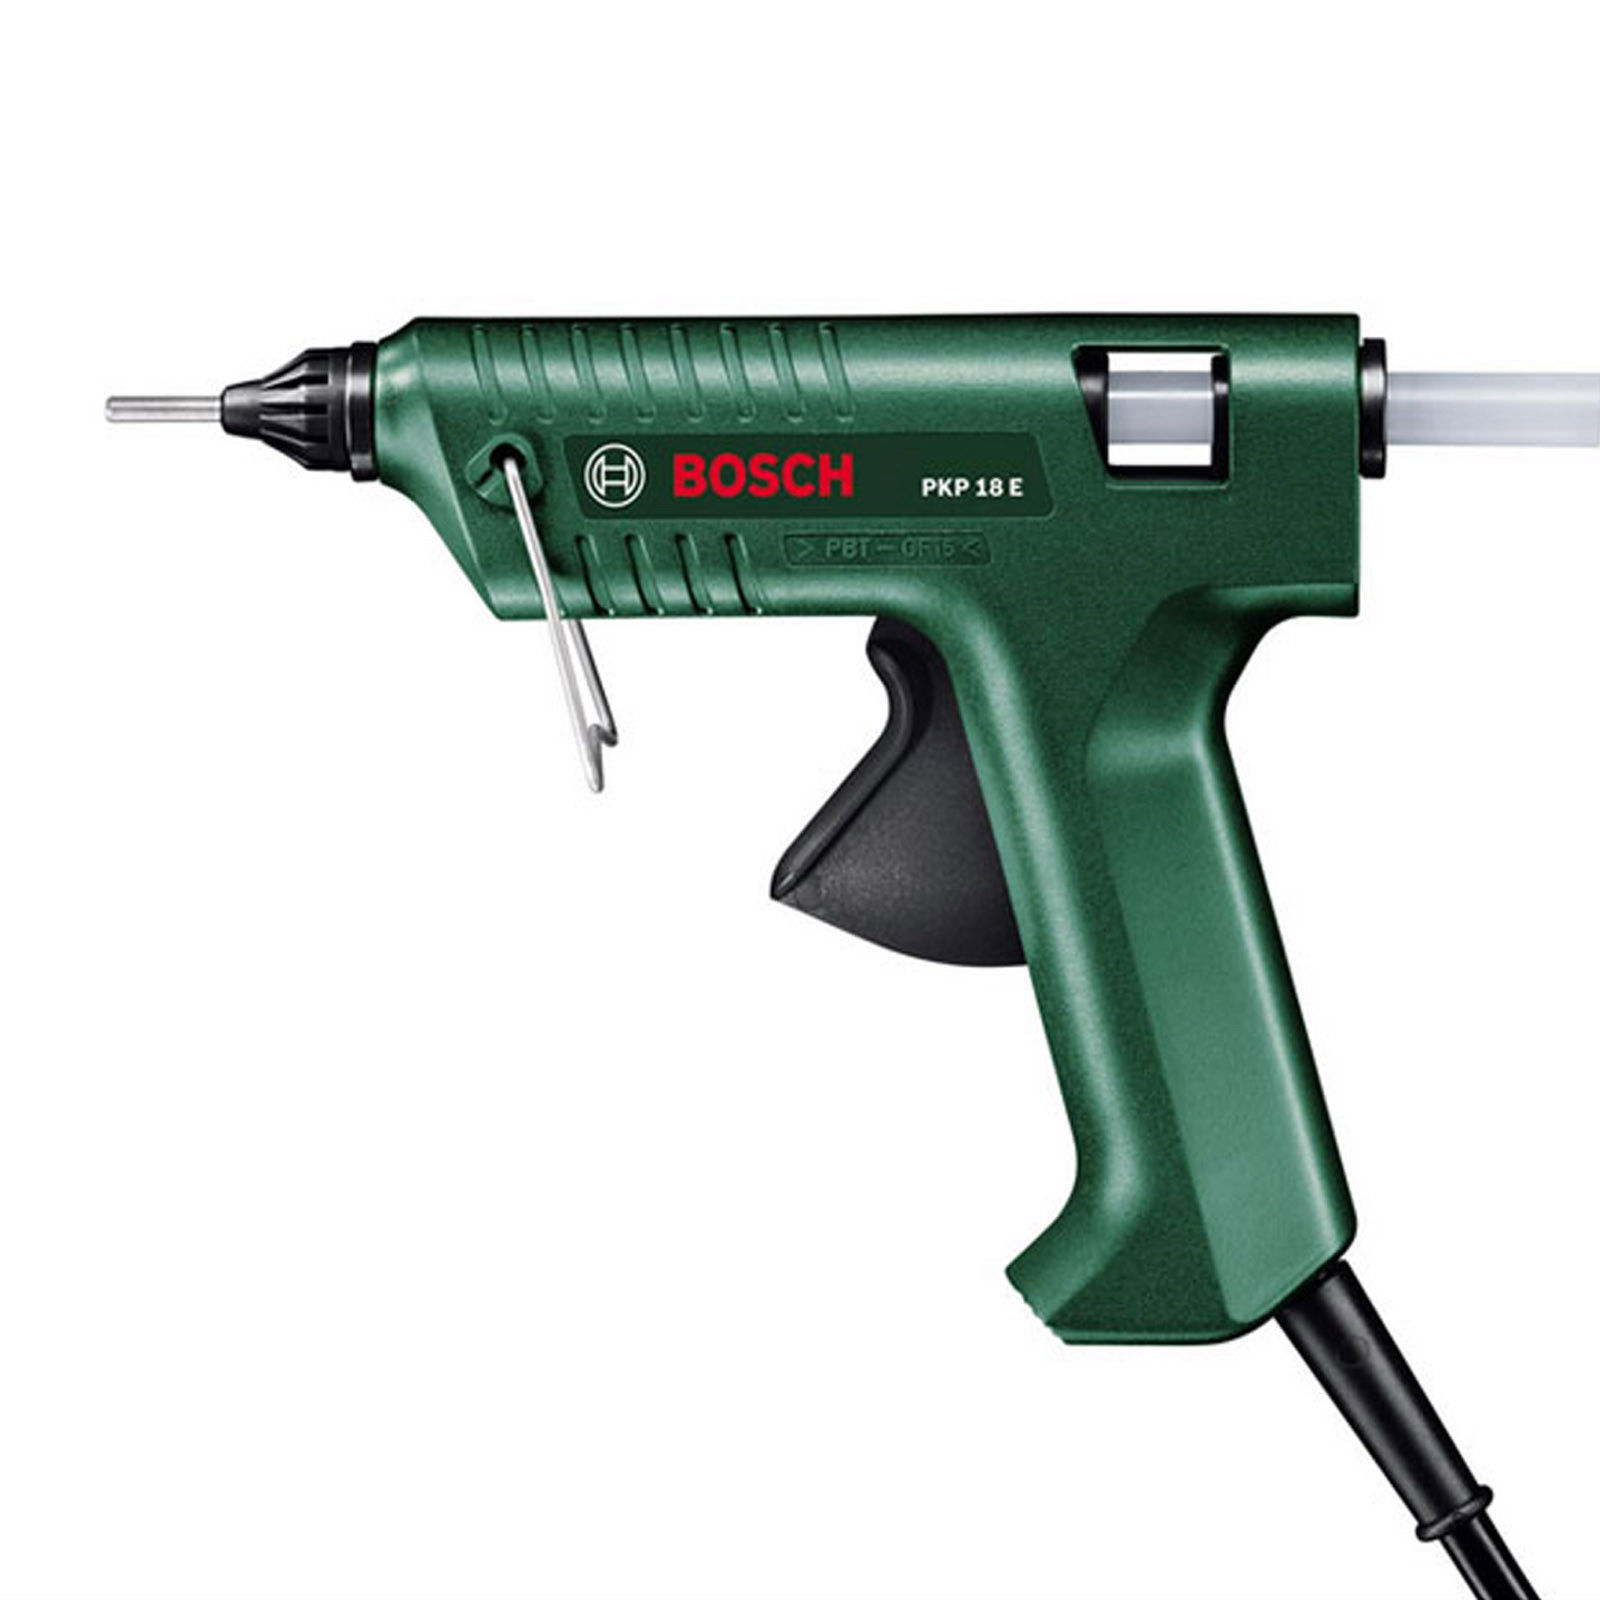 BOSCH Nozzle For Bosch PKP18E Glue Gun Stick Heating Adhesives, Sealants & Tapes Adhesive Guns & Dispensers NOZZLE ONLY